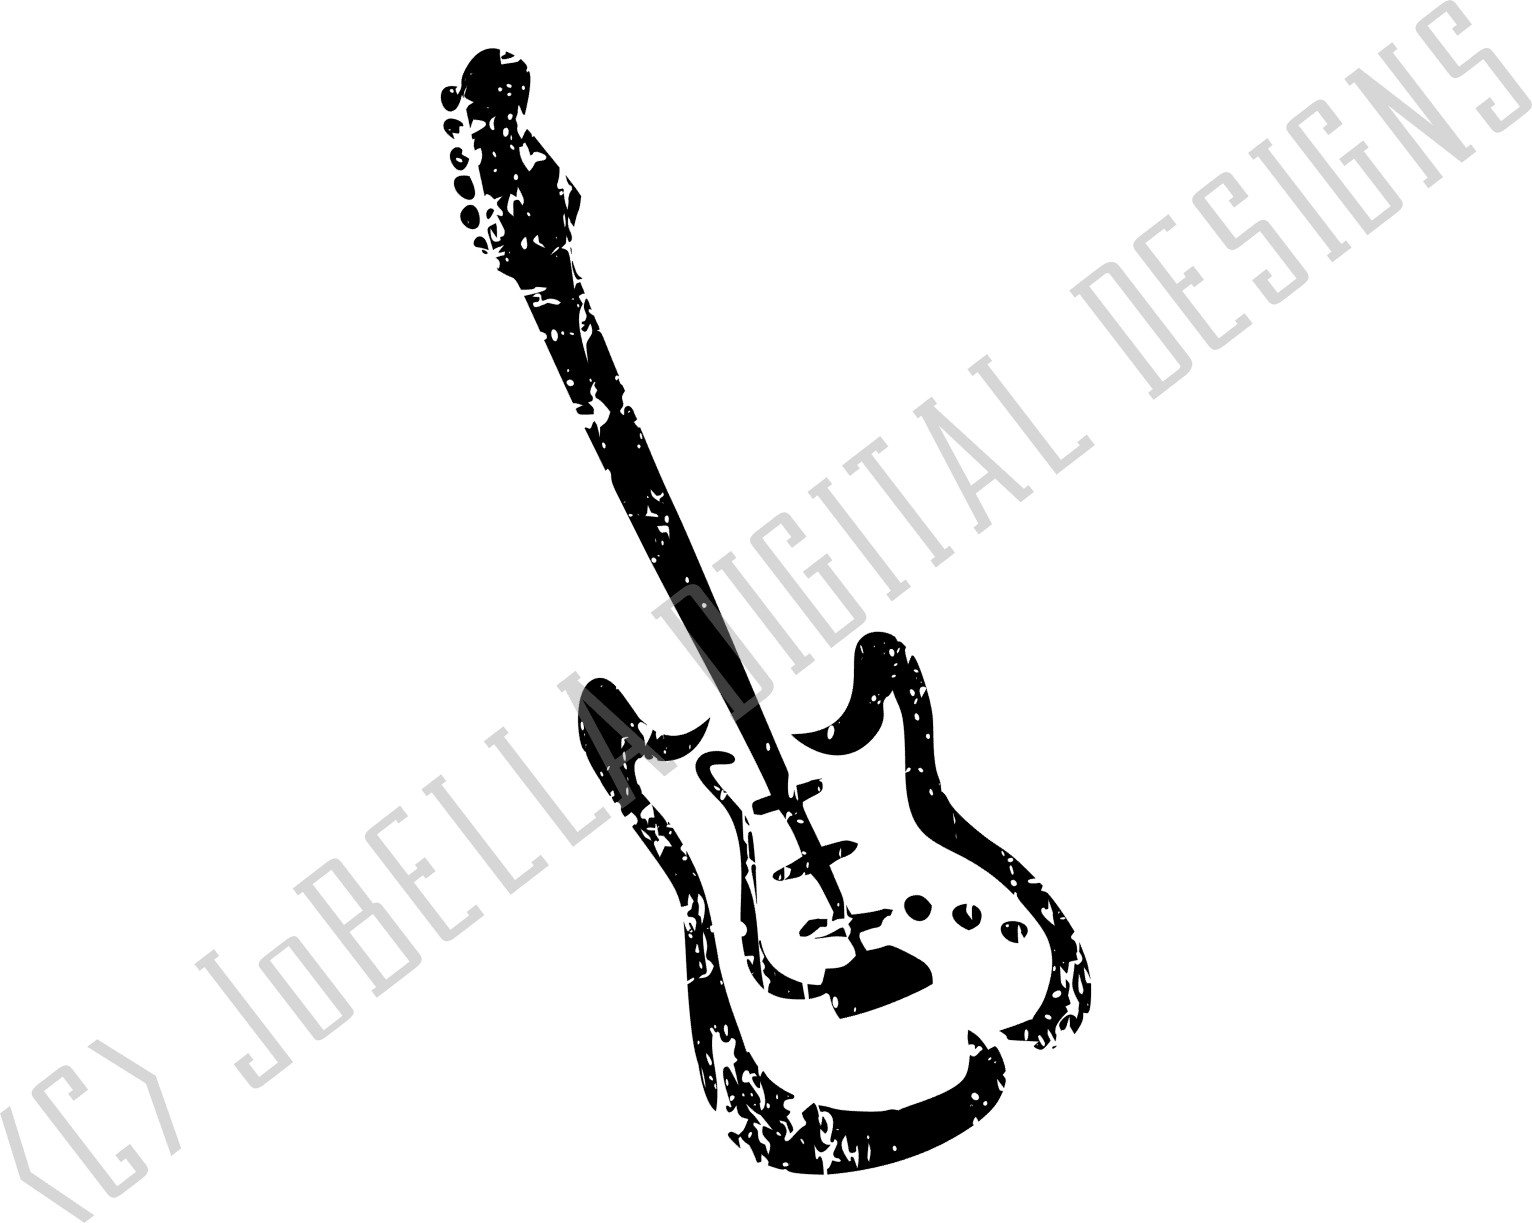 Fender Guitar SVG, Sublimation and Printable Design example image 3